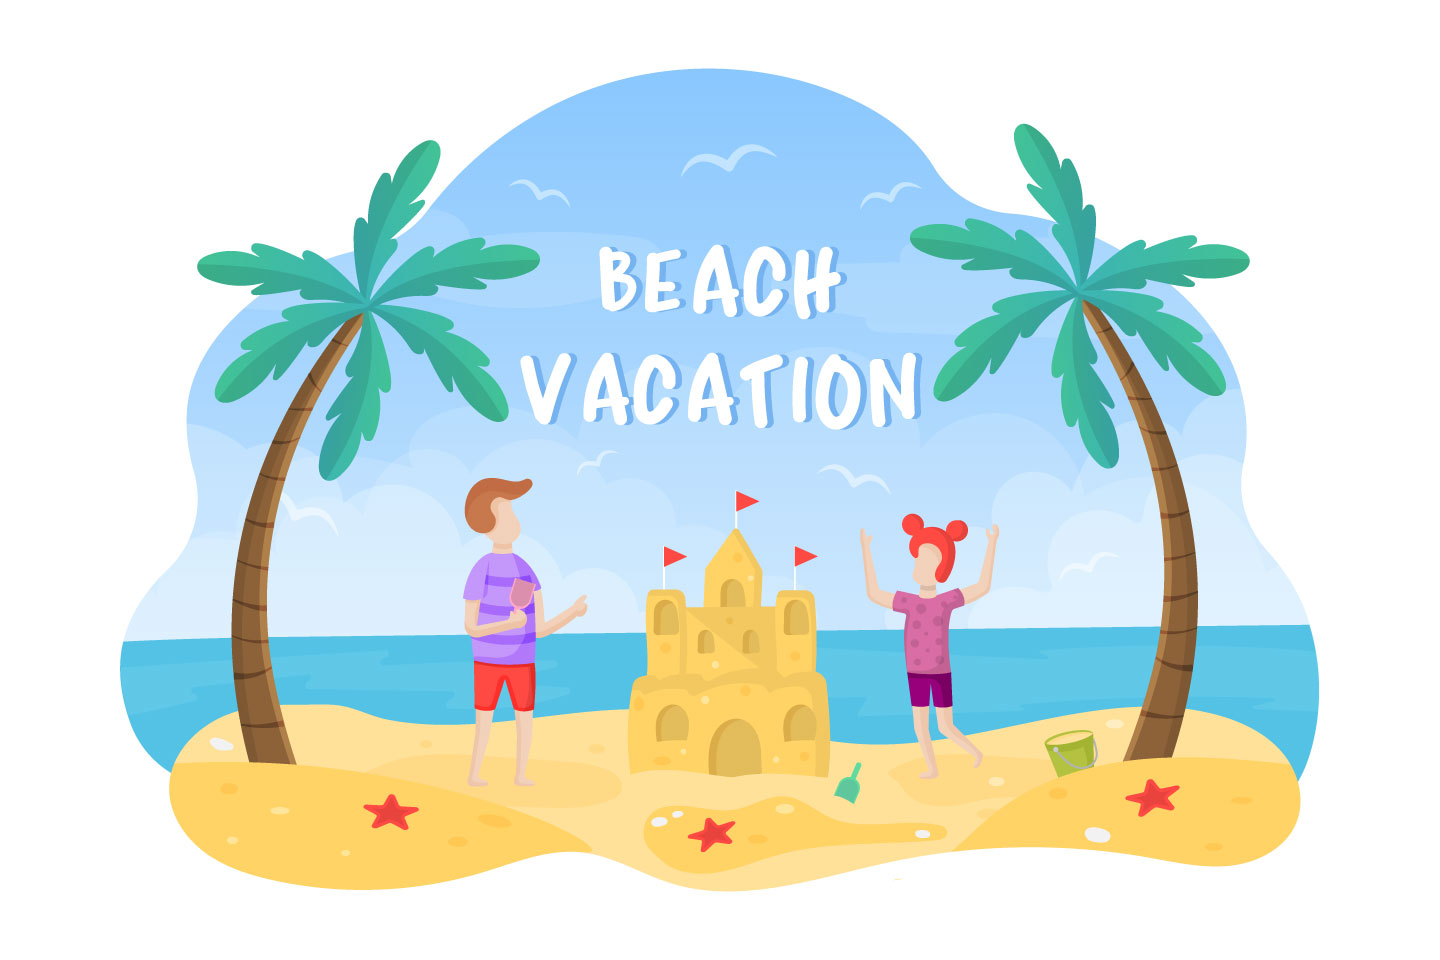 Beach Vacation with Children Vector Illustration